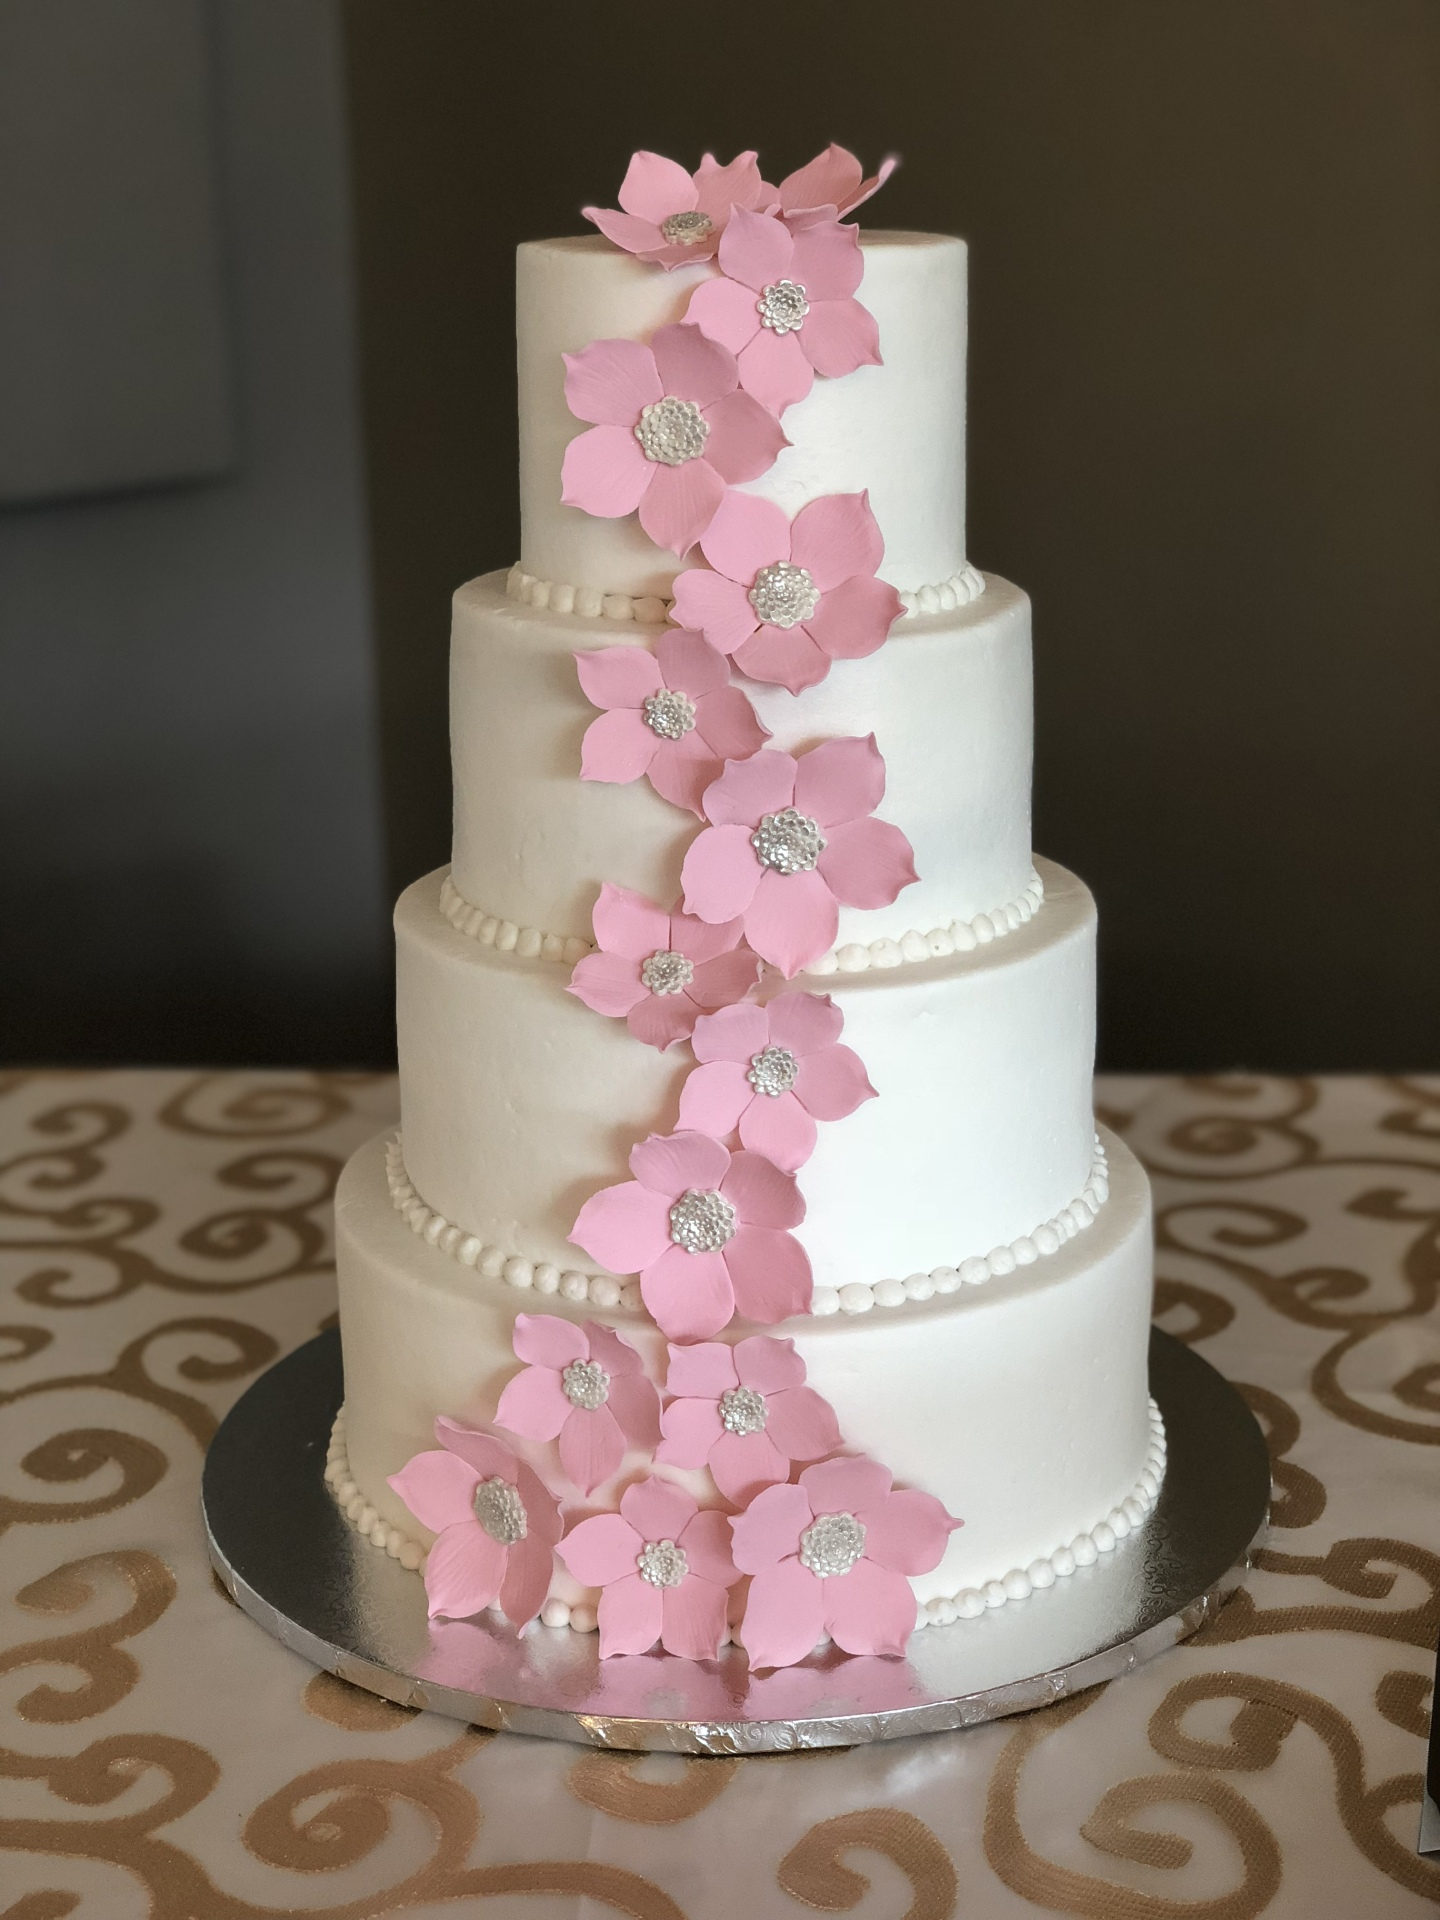 Buttercream cake with cascading pink sugar flowers